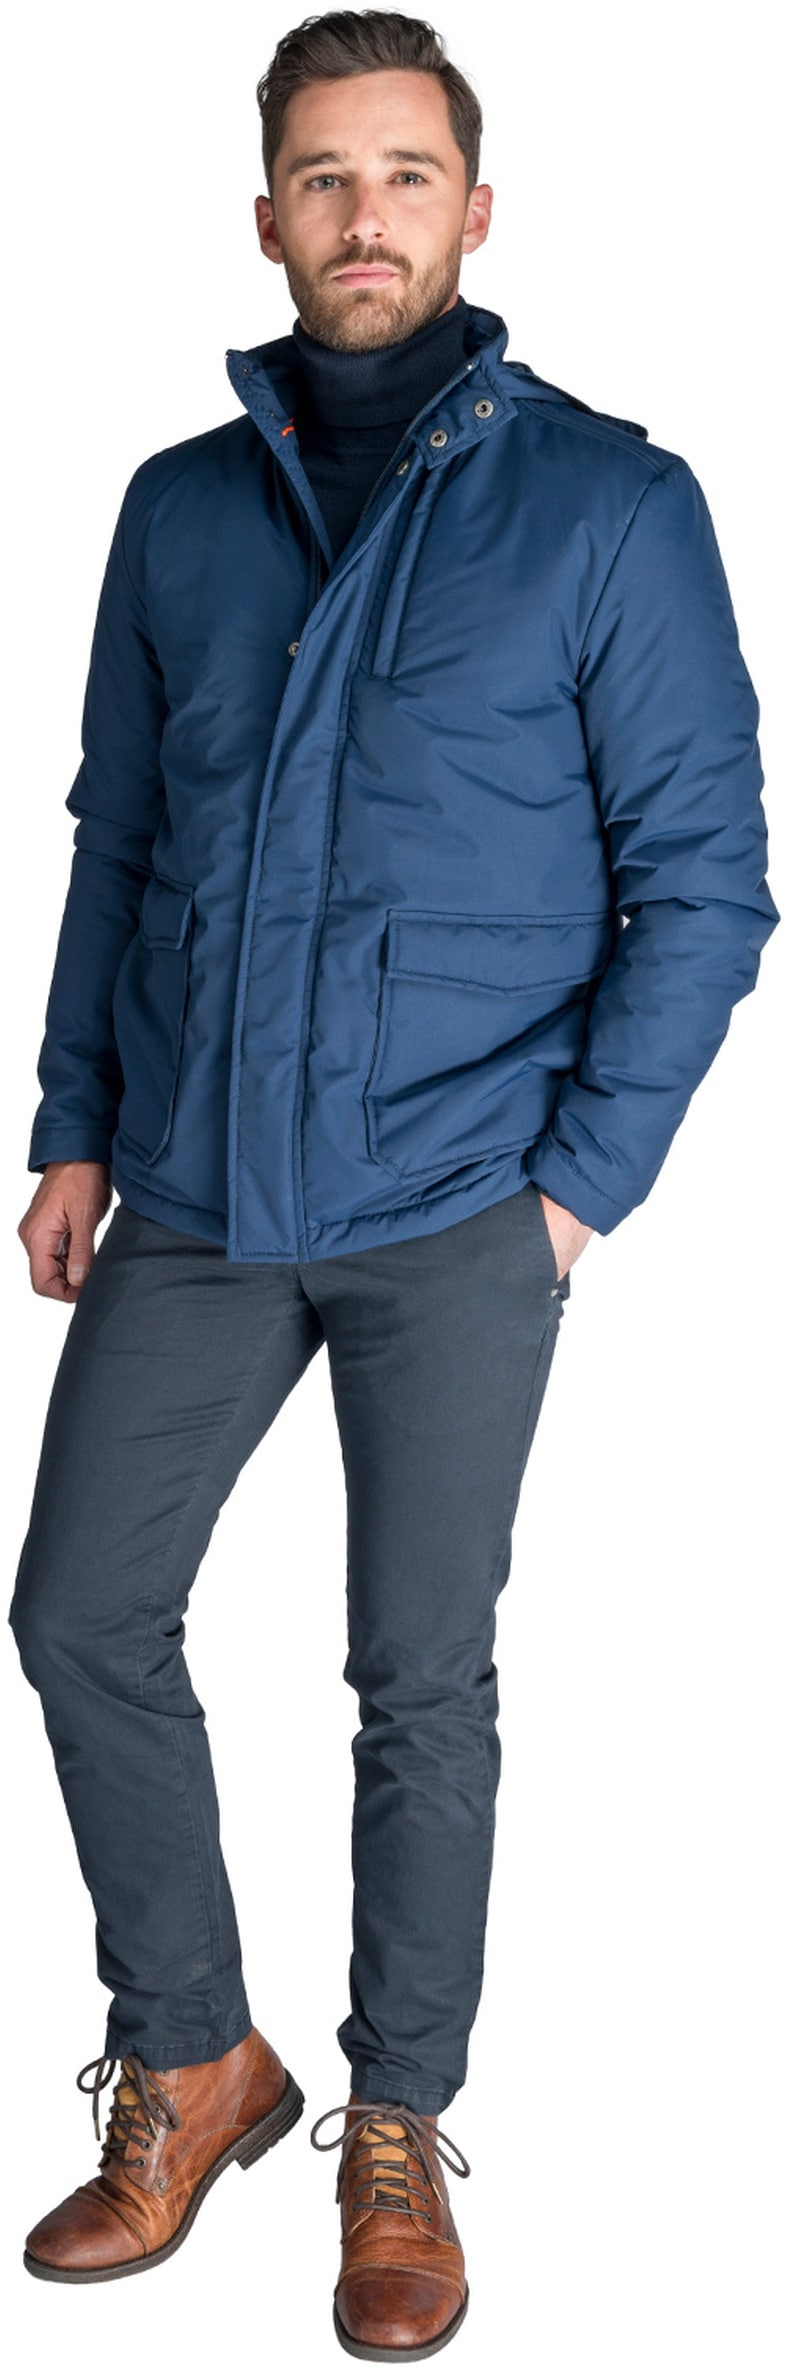 Suitable Jacket Agera Navy foto 1